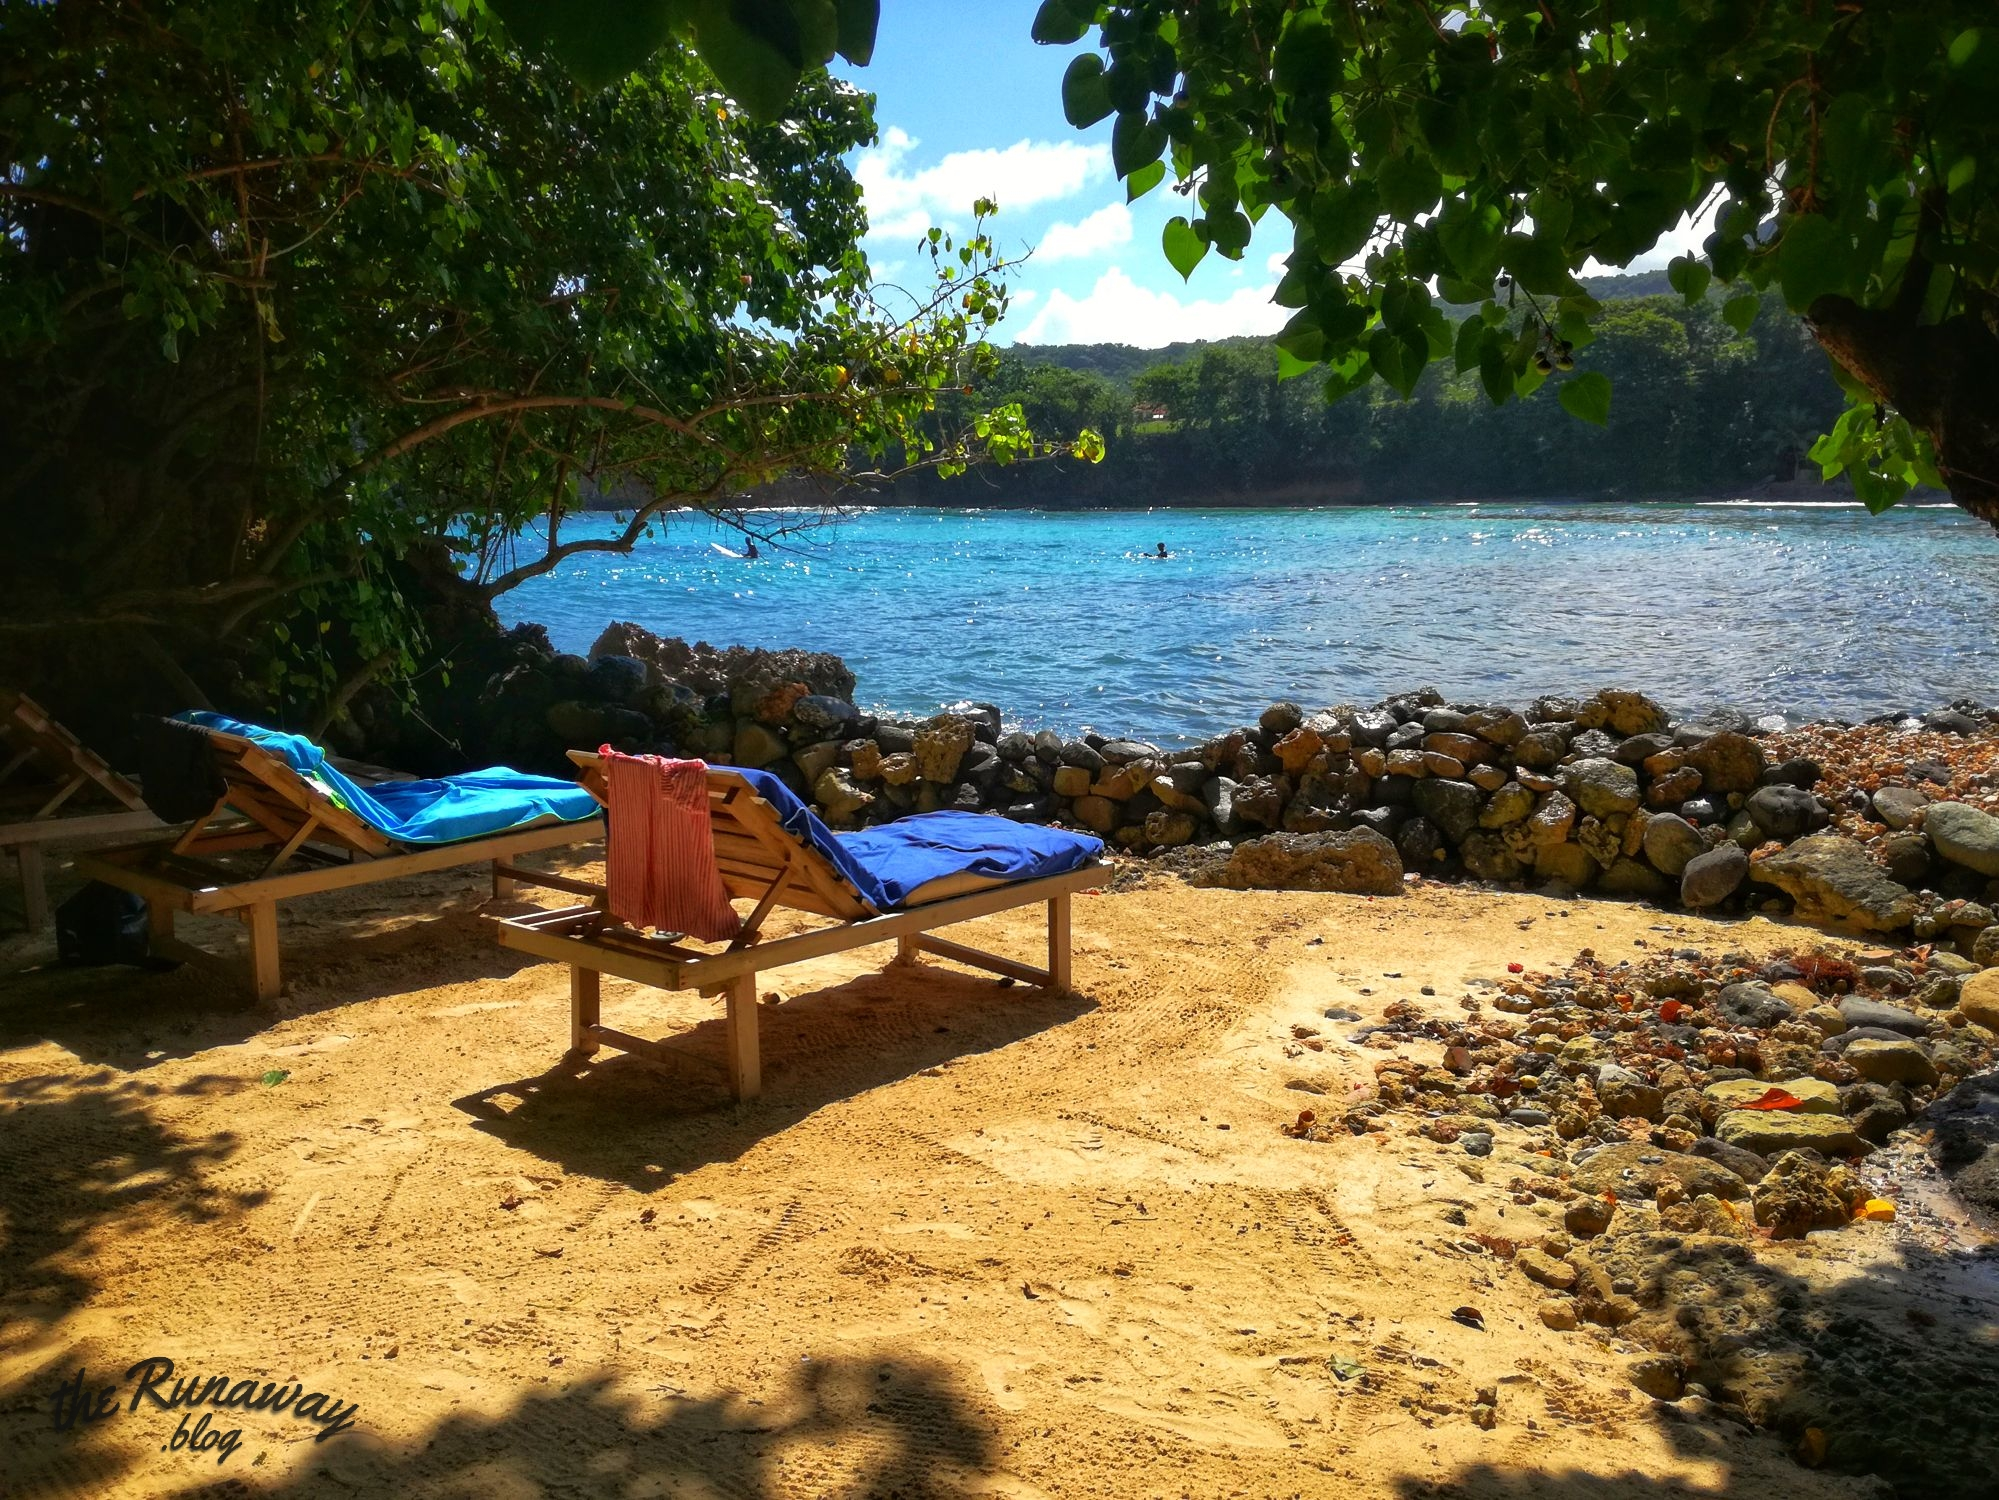 THE BEST HOTEL IN JAMAICA - OFF THE BEATEN TRACK